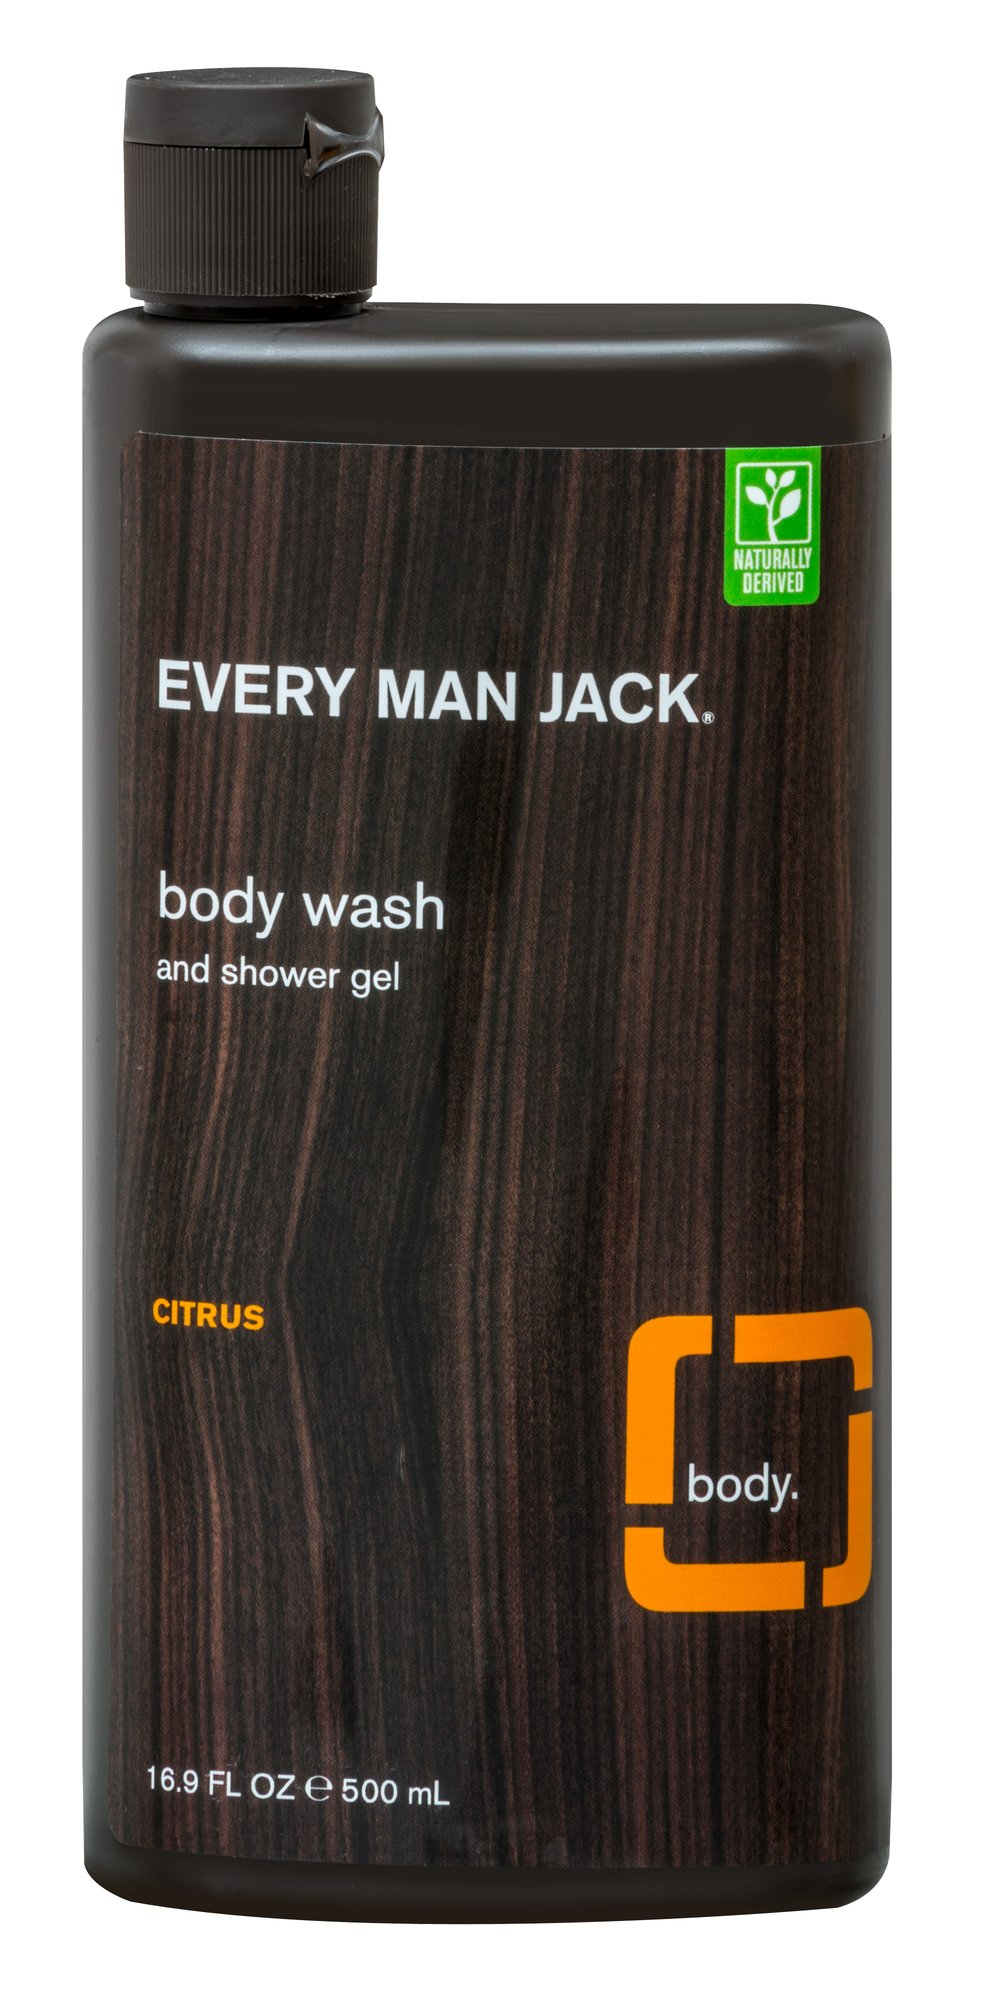 Every Man Jack® Citrus Scrub Body Wash & Shower Gel <p><strong>From the Manufacturer's Label:</strong></p><p><strong>Citrus Scrub</strong></p><p><strong>Body Wash & Shower Gel</strong></p><p>WILL THIS STUFF MAKE ME A ROCK STAR? We don't condone air guitar in the shower. (Or anywhere else.) But give it a try. While that's going on, this invigorating body wash will gently scrub your skin, leaving it feel